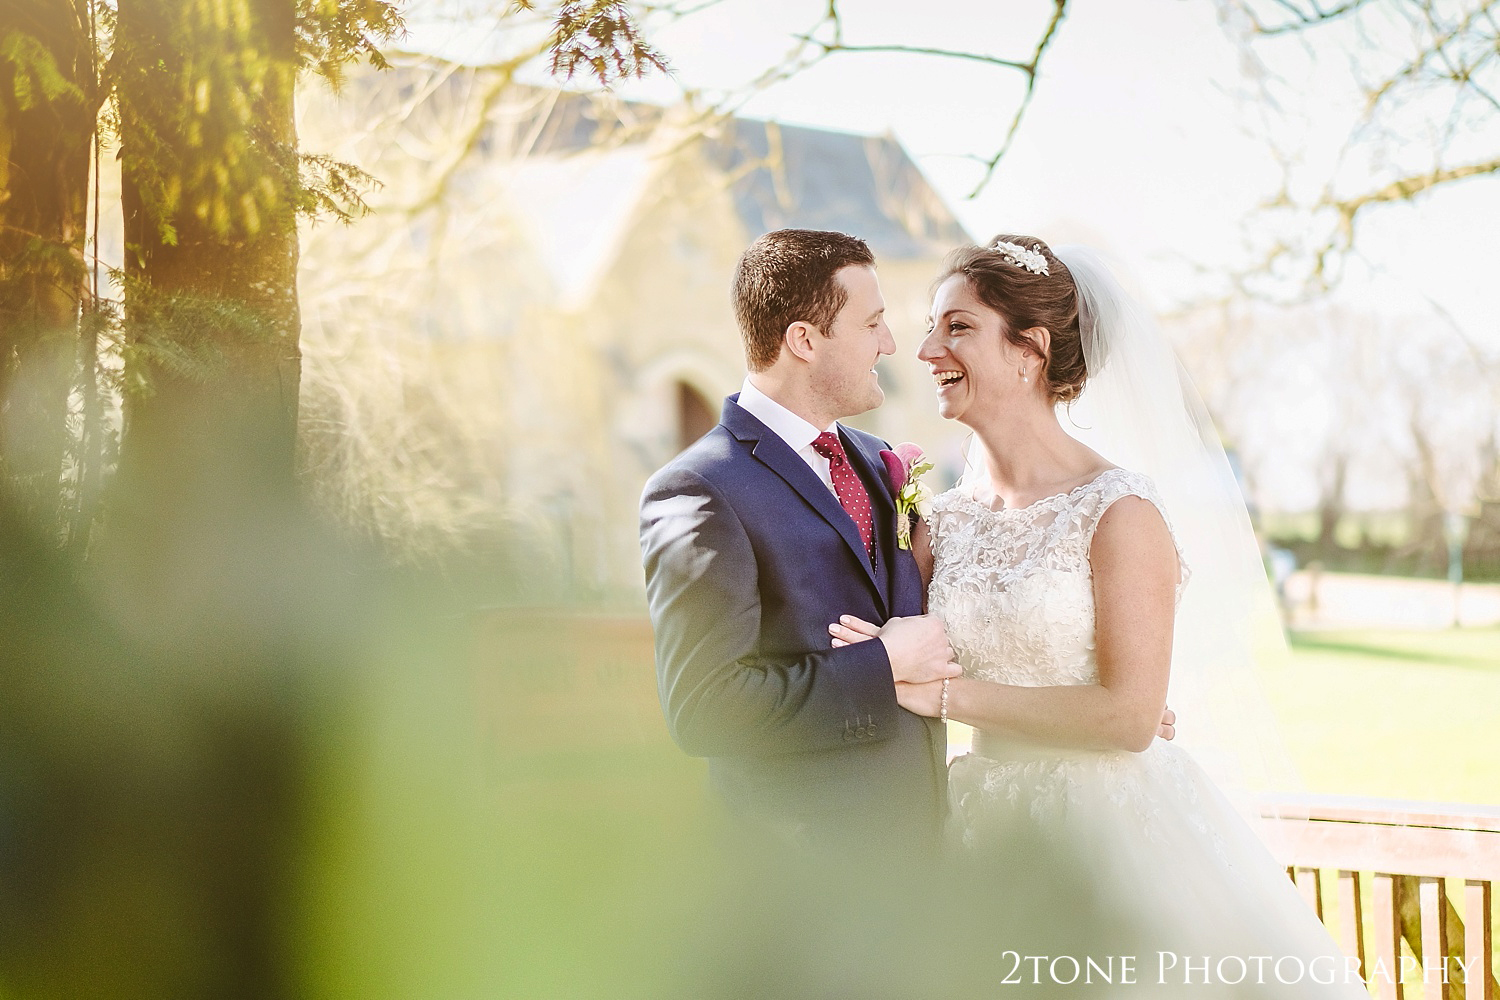 Natural wedding photographs at Haselbury Mill and the Old Tythe Barn in Somerset by www.2tonephotography.co.uk